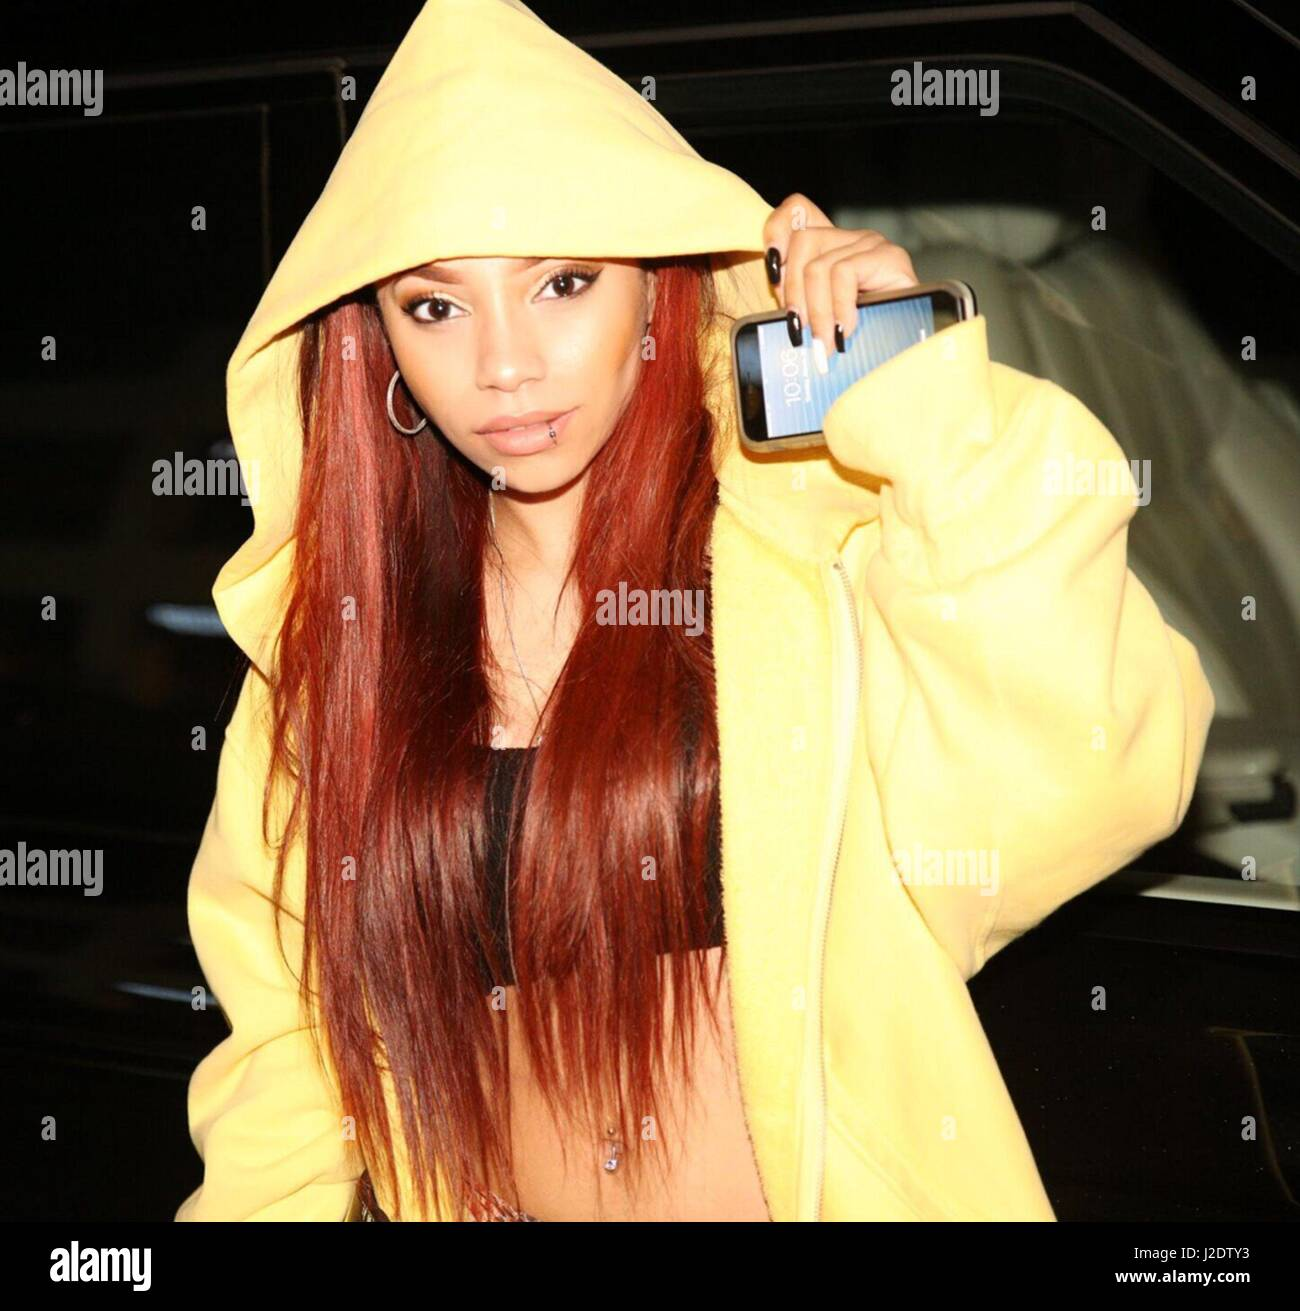 eazy es daughter ebie wright outside nobu in west hollywood featuring ebie wright where los angeles california united states when 26 mar 2017